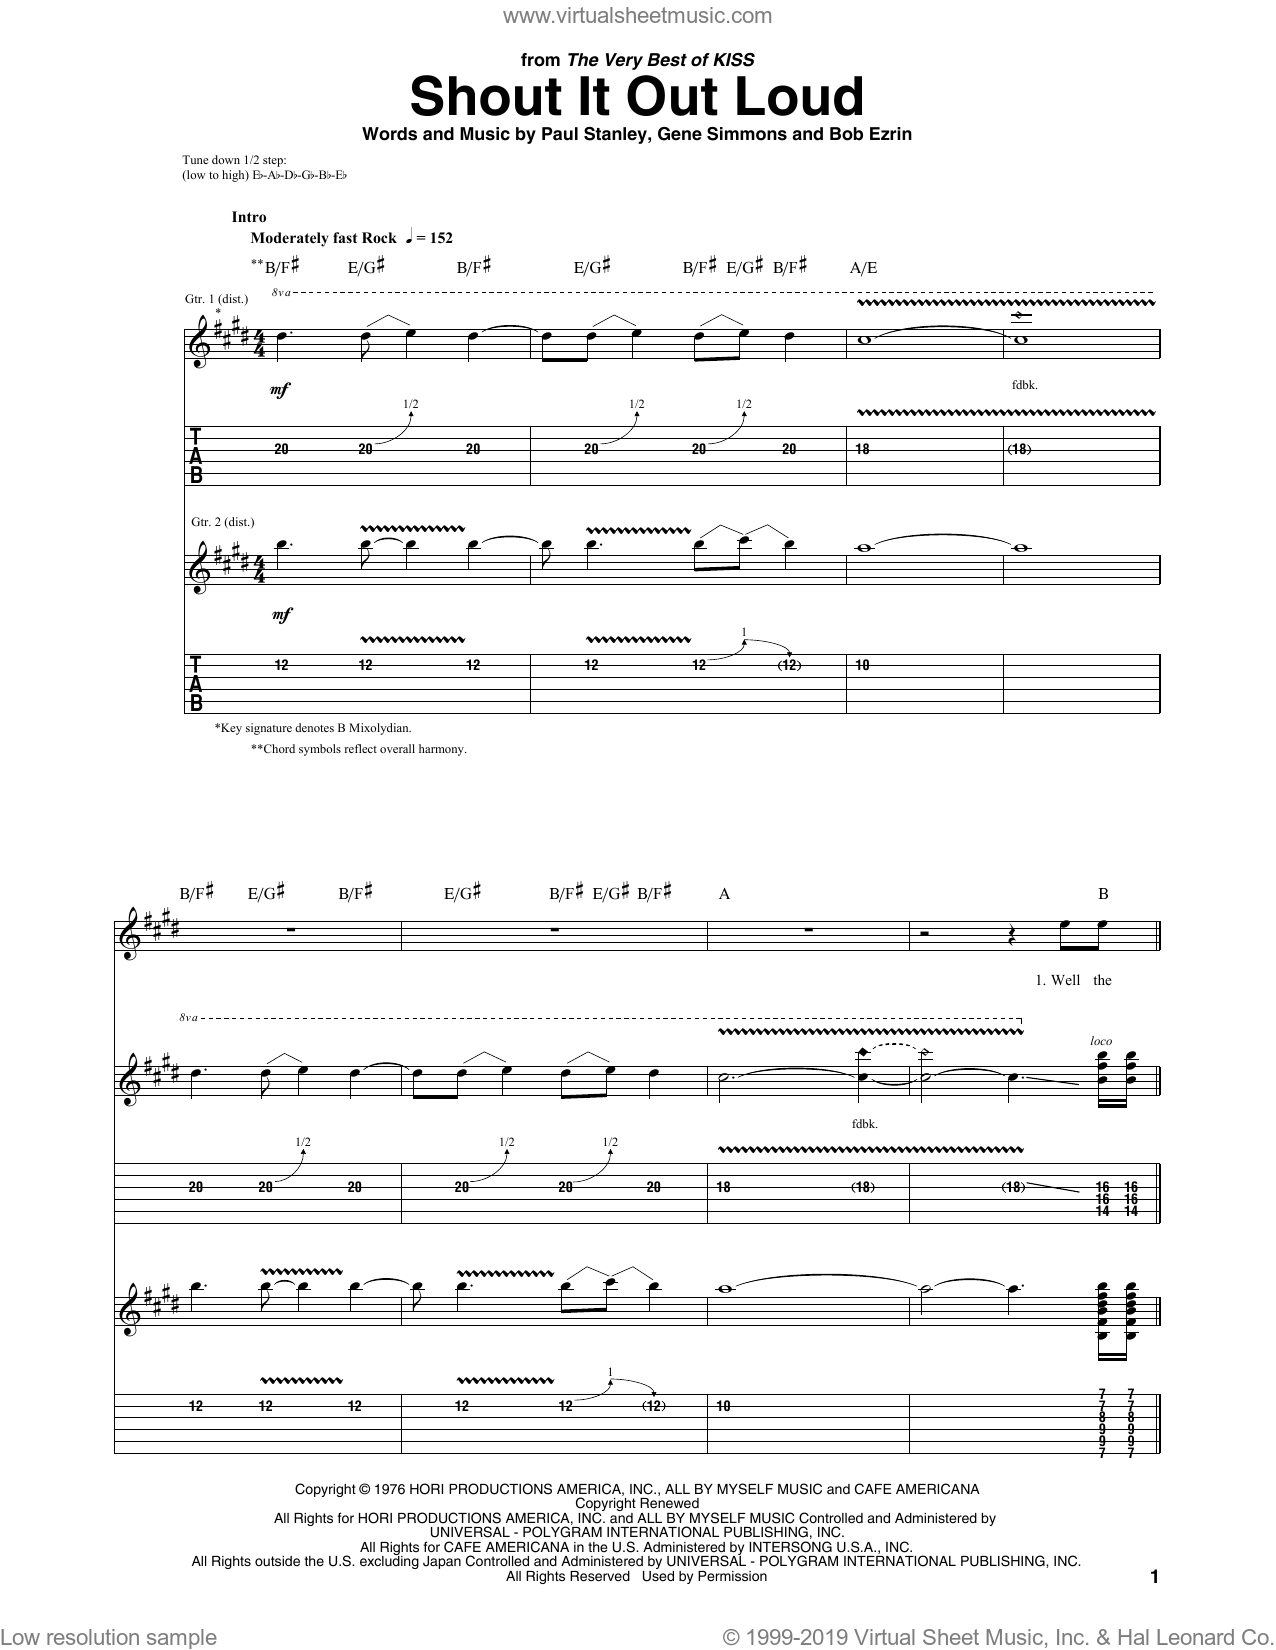 Shout It Out Loud sheet music for guitar (tablature) by Paul Stanley, KISS and Gene Simmons. Score Image Preview.